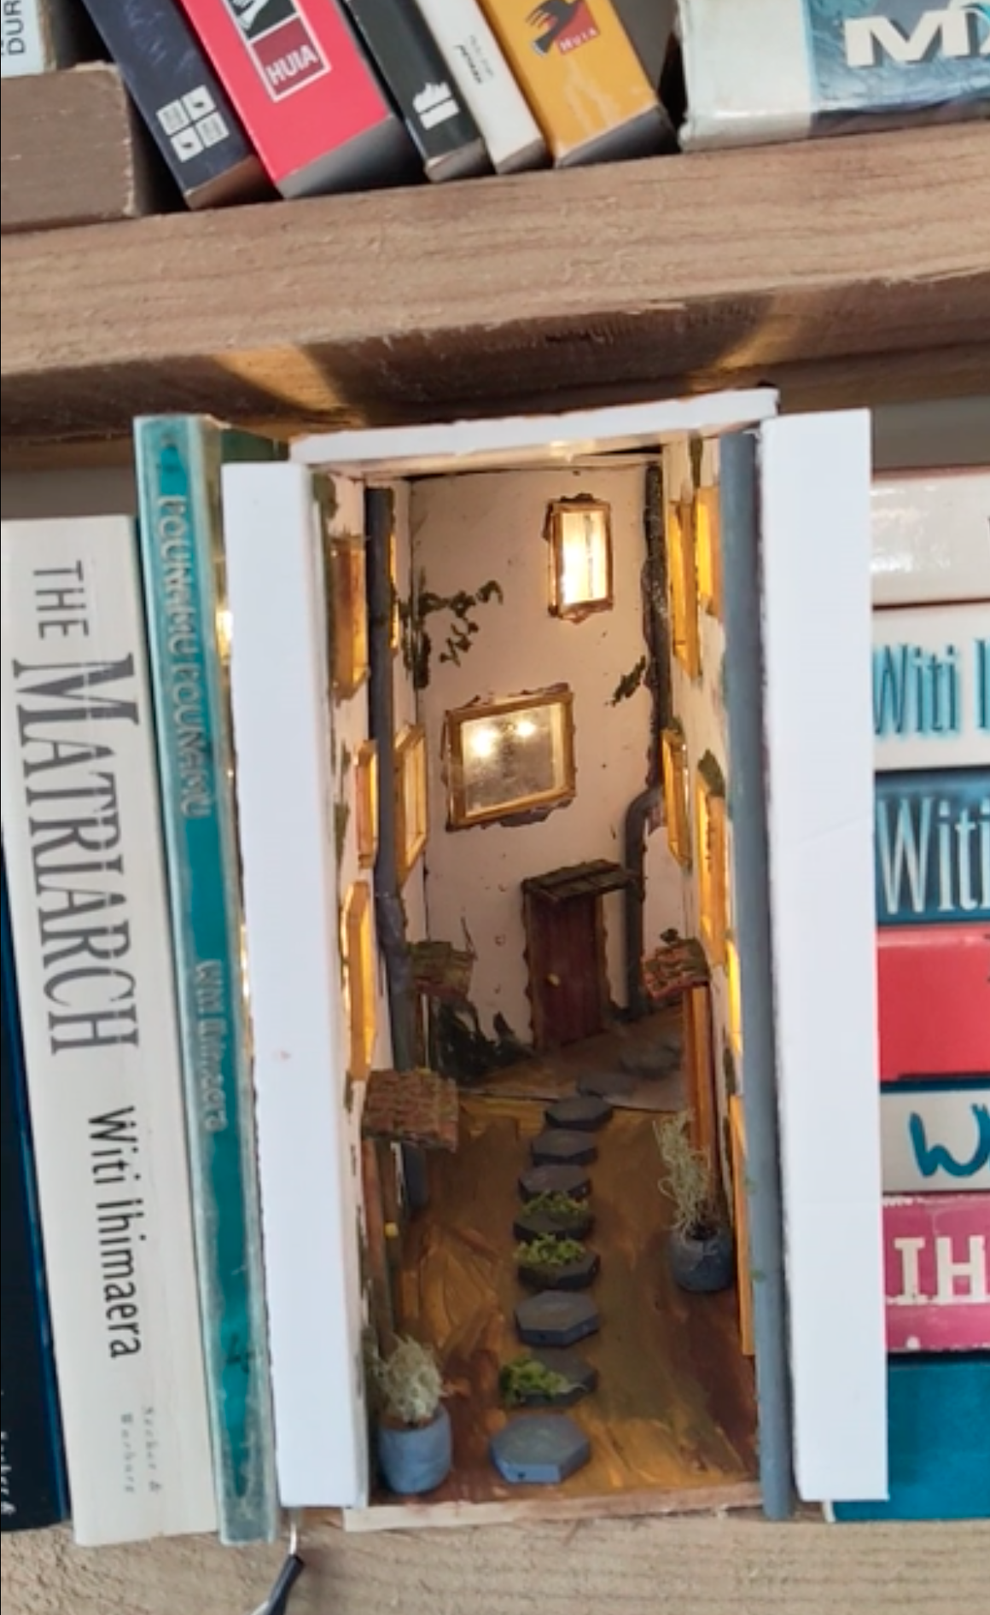 15 Book Nook Shelf Inserts That'll Make You Want To Create One Of Your Own